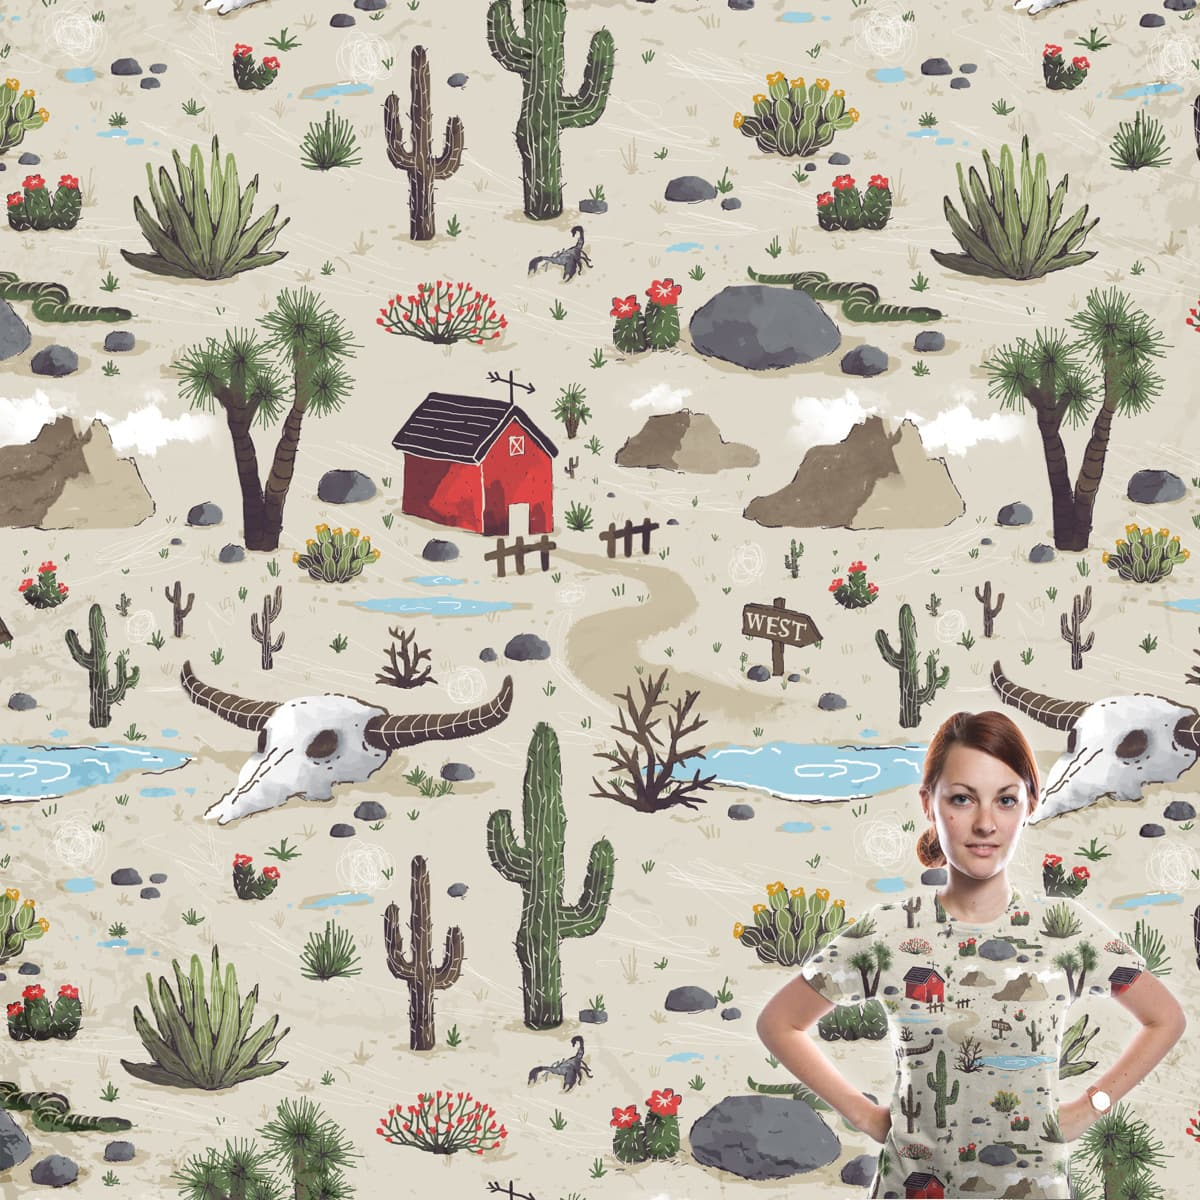 Somewhere in the desert by diekave on Threadless